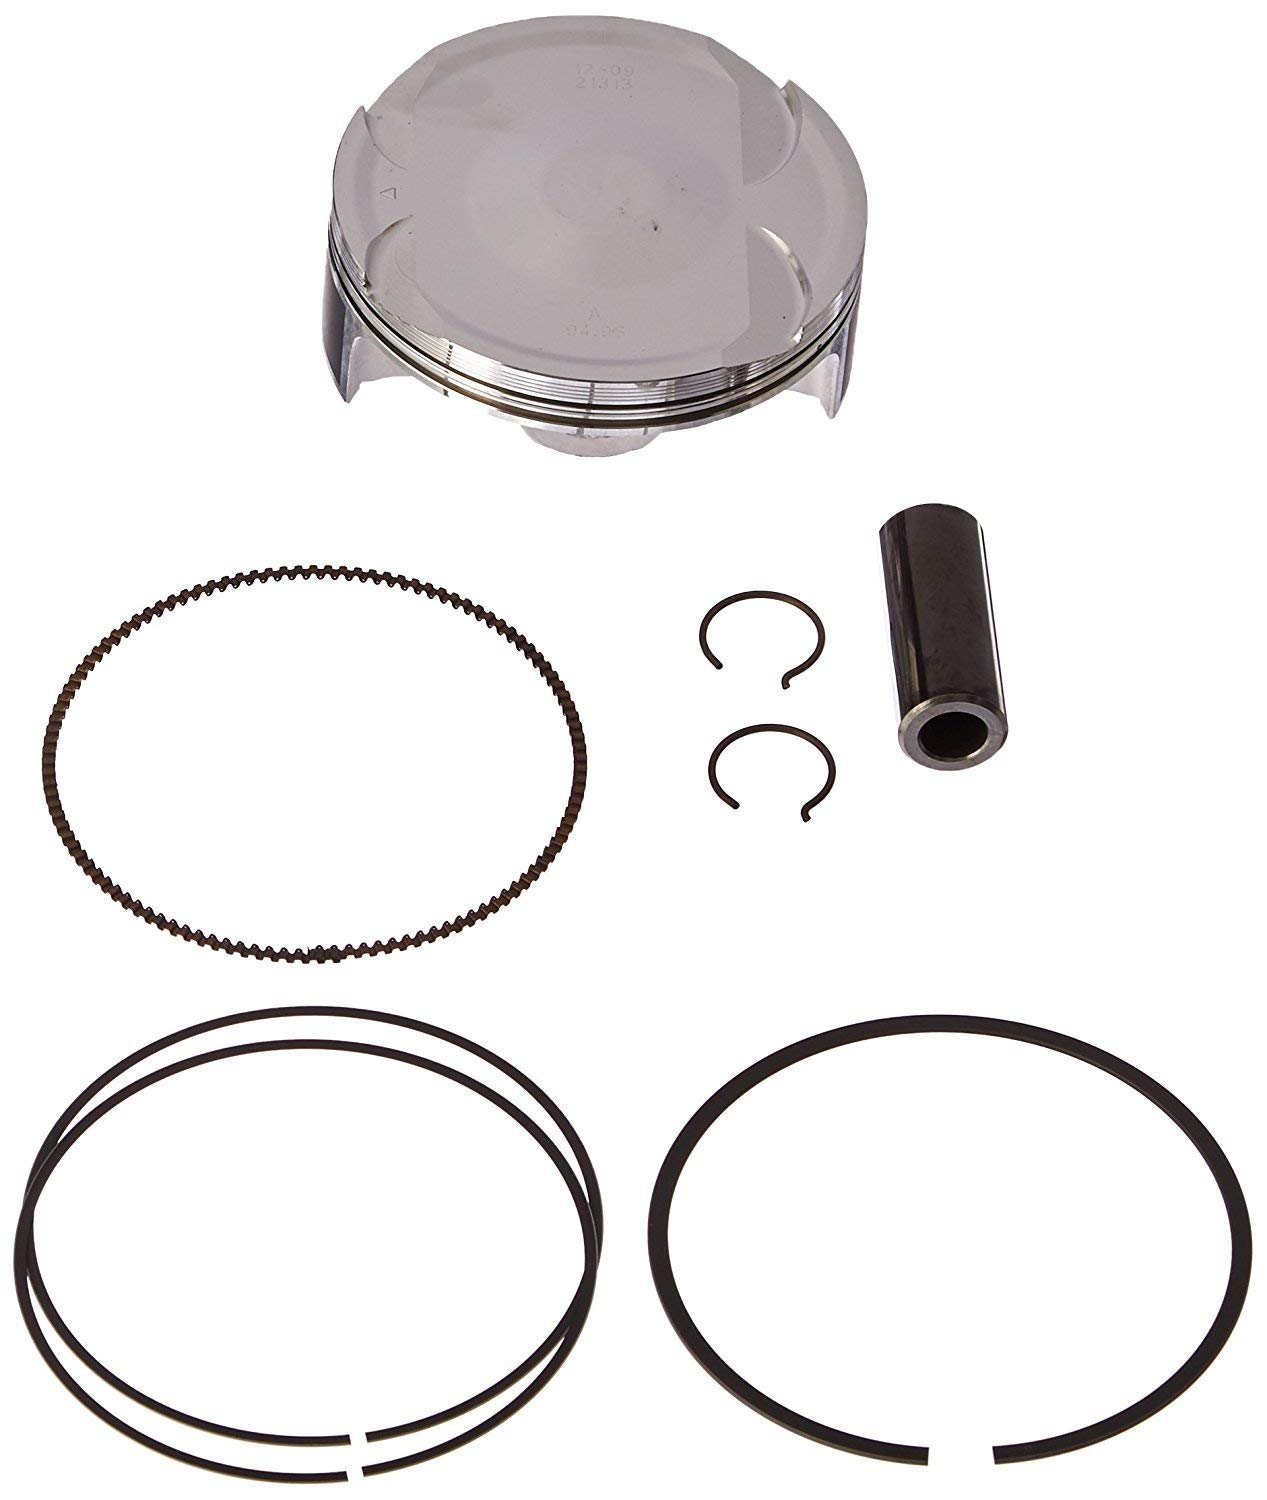 New Vertex Replica Piston Kit for KTM 500 EXC (12-18), 500 XC-W (12-16)